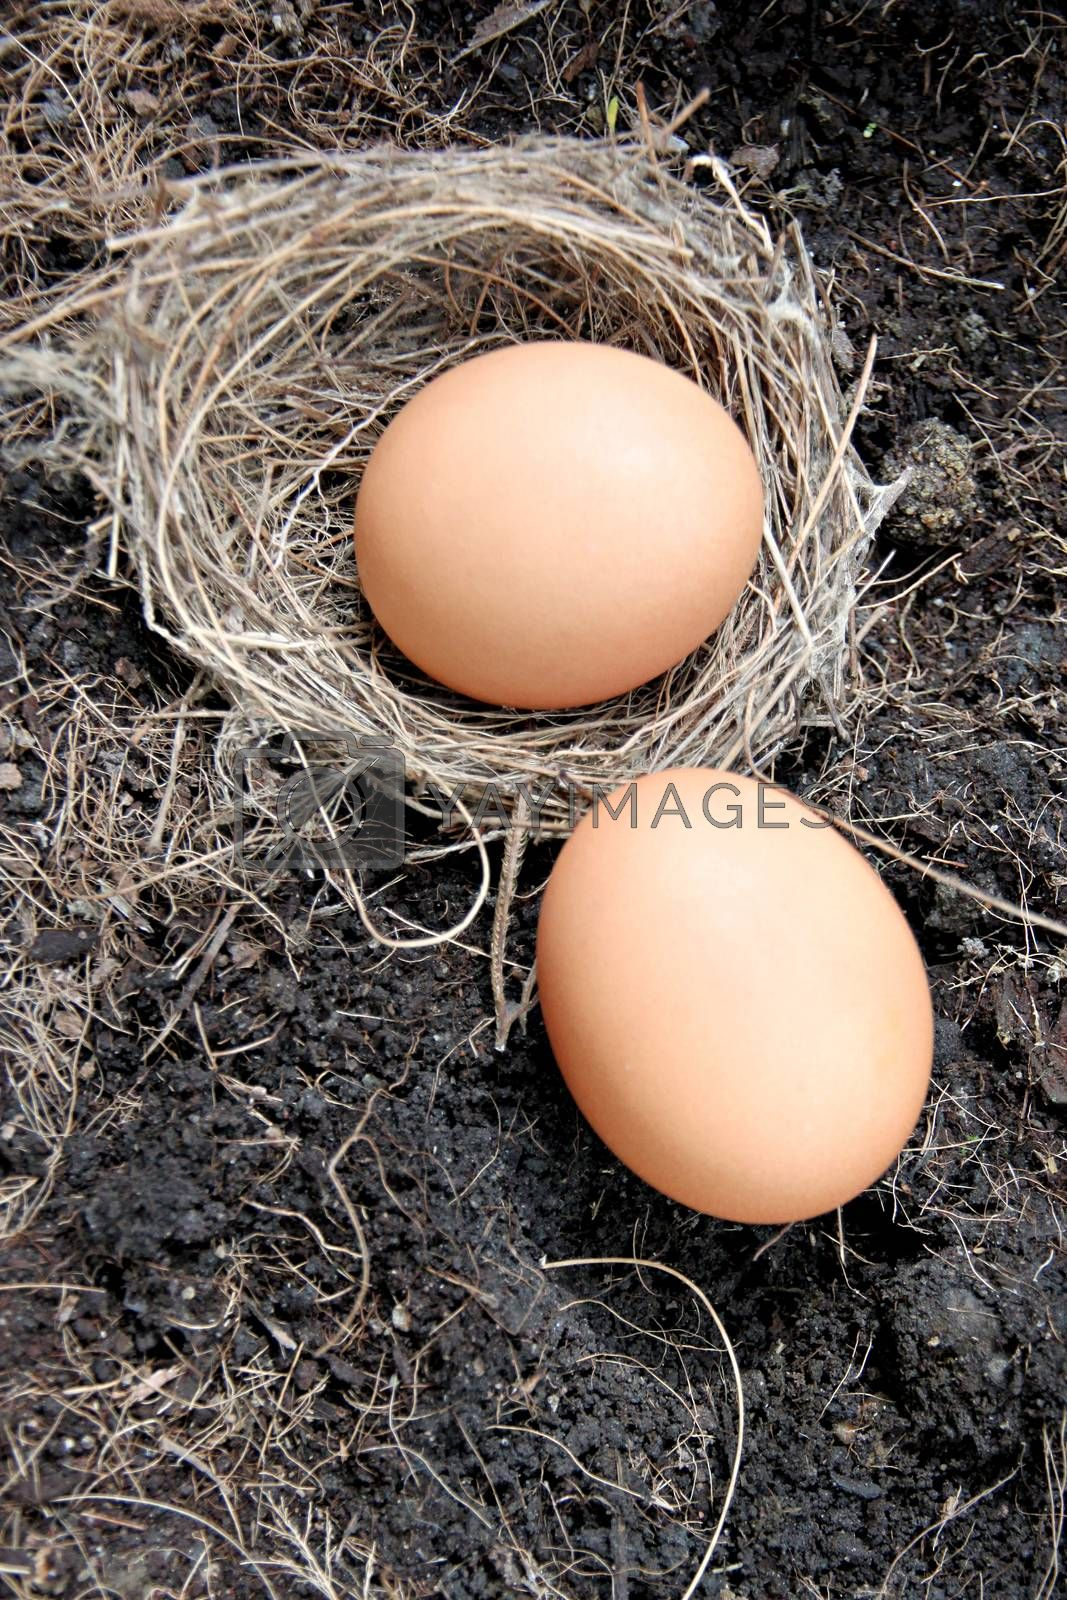 The Picture Eggs in nests placed on ground.